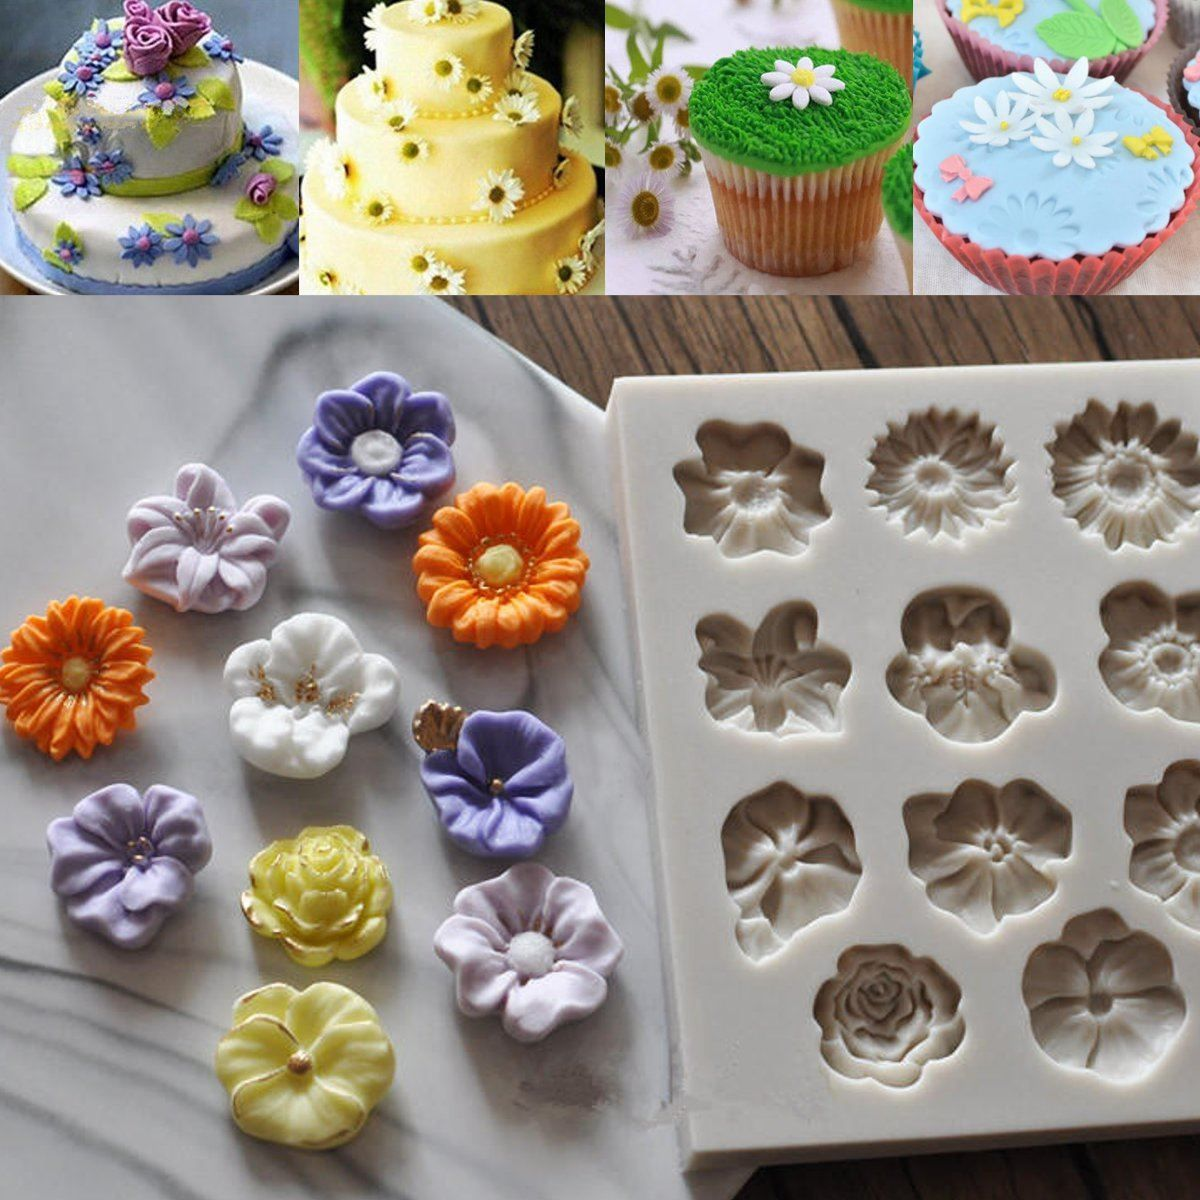 Find More Cake Molds Information About Diy Silicone Daisy Rose